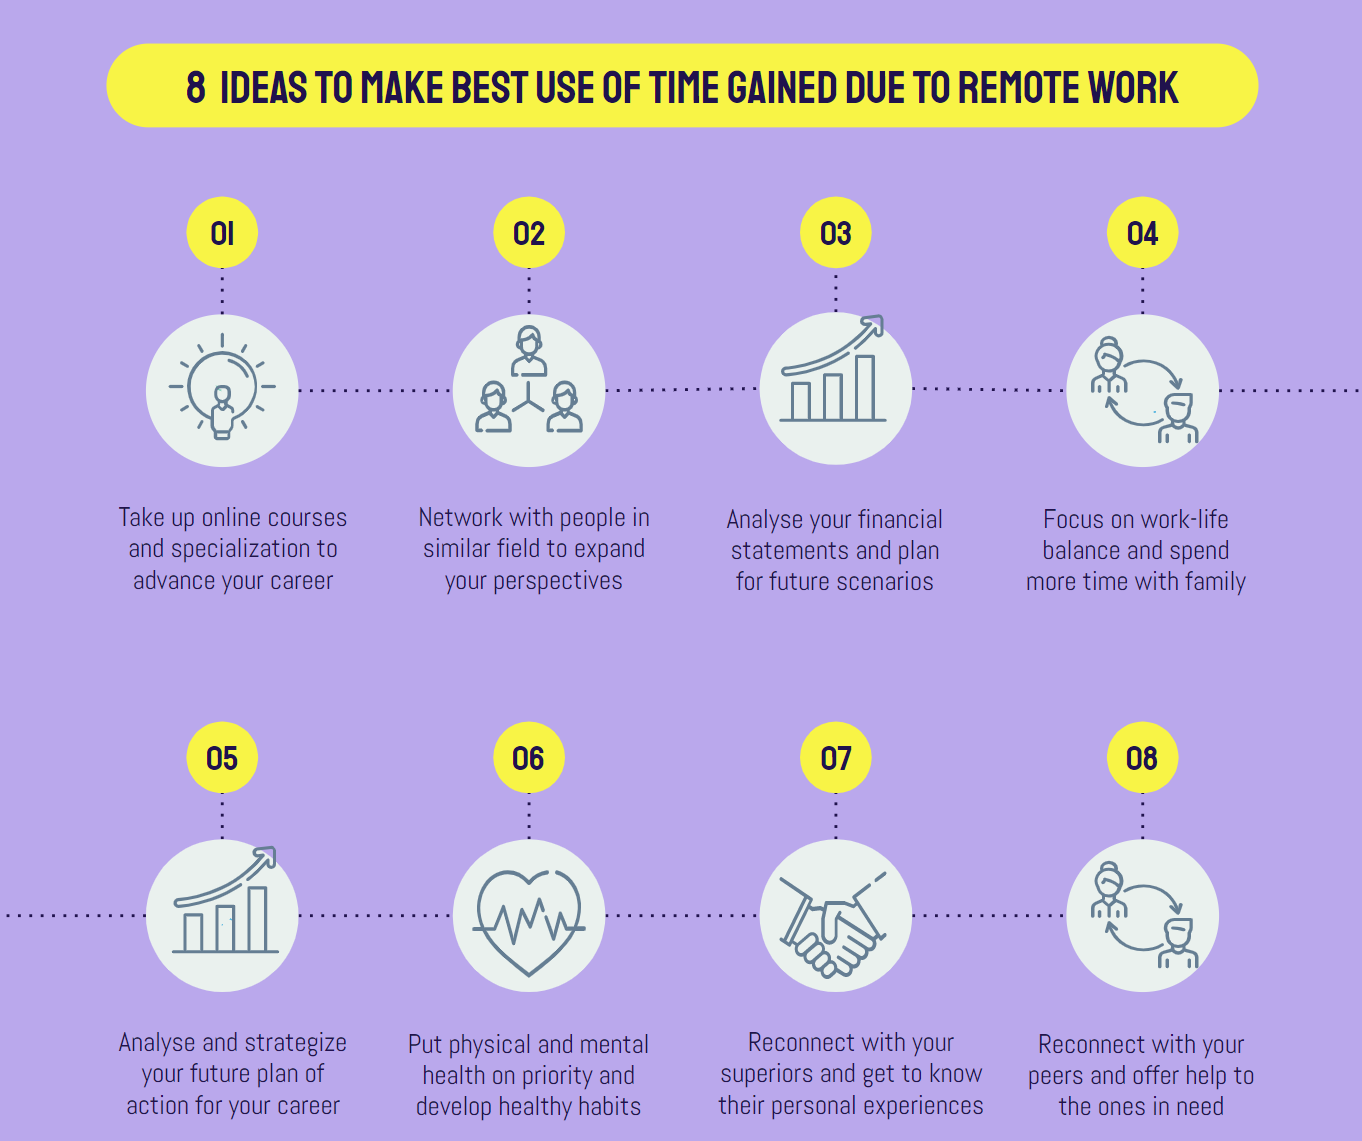 8 Ideas to make best use of time gained due to remote work